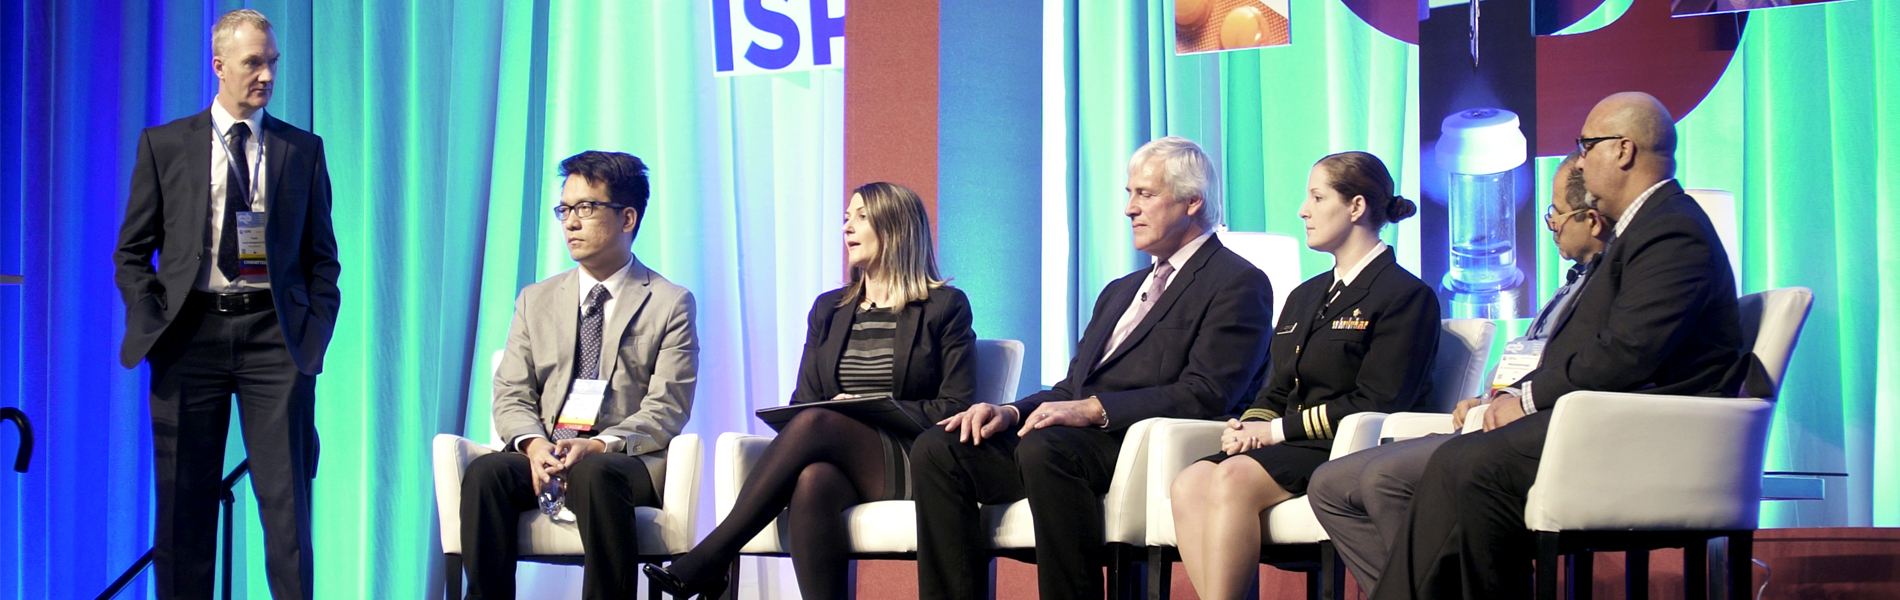 Regulatory Town Hall at the 2018 ISPE Annual Meeting & Expo - ISPE Pharmaceutical Engineering